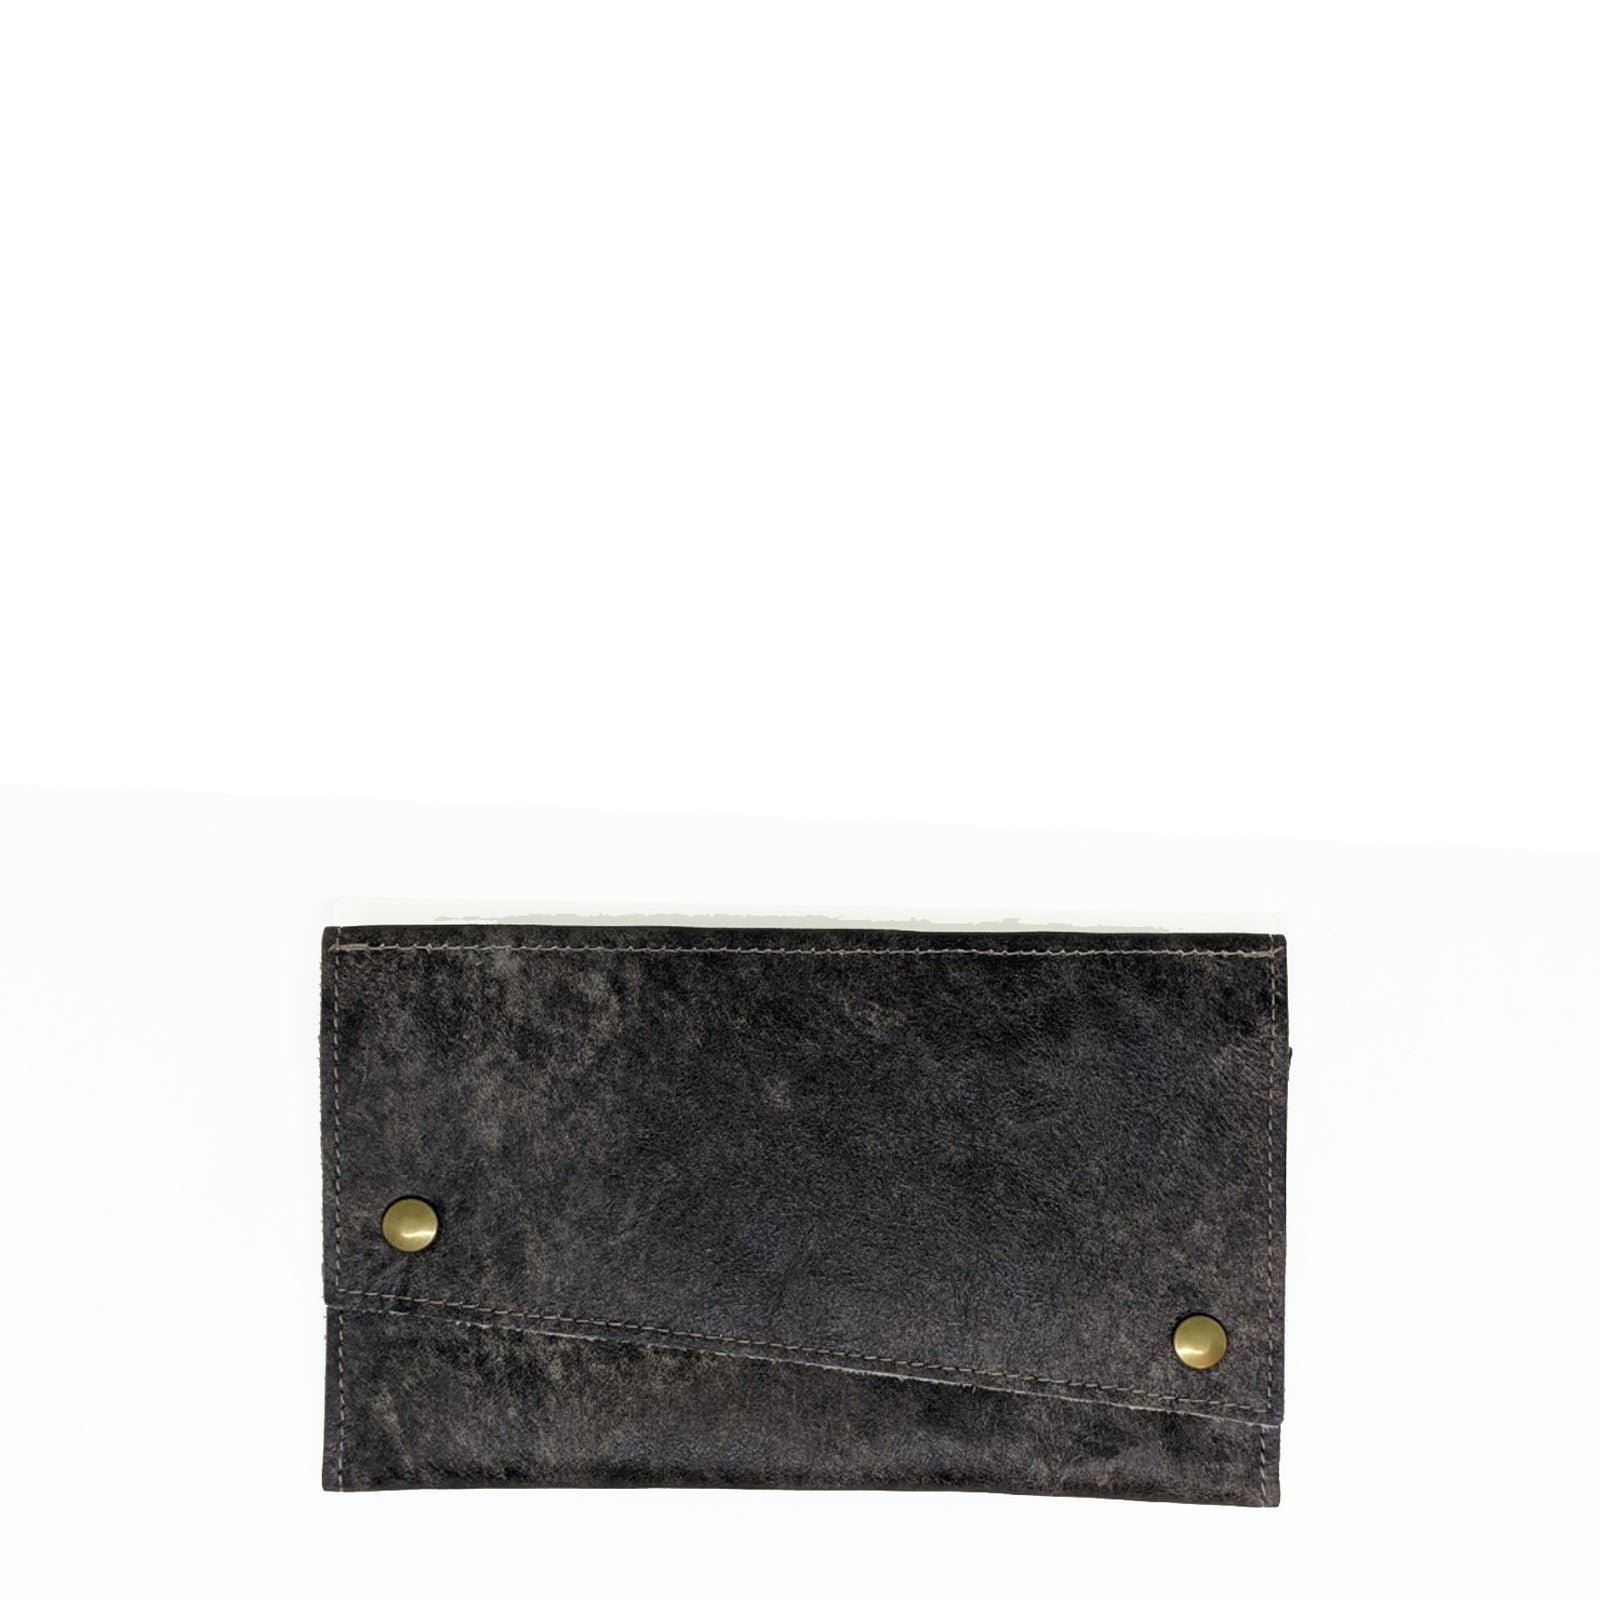 Kimerly Tri-fold Wallet - Wicked - Brynn Capella, Tri-fold Wallet